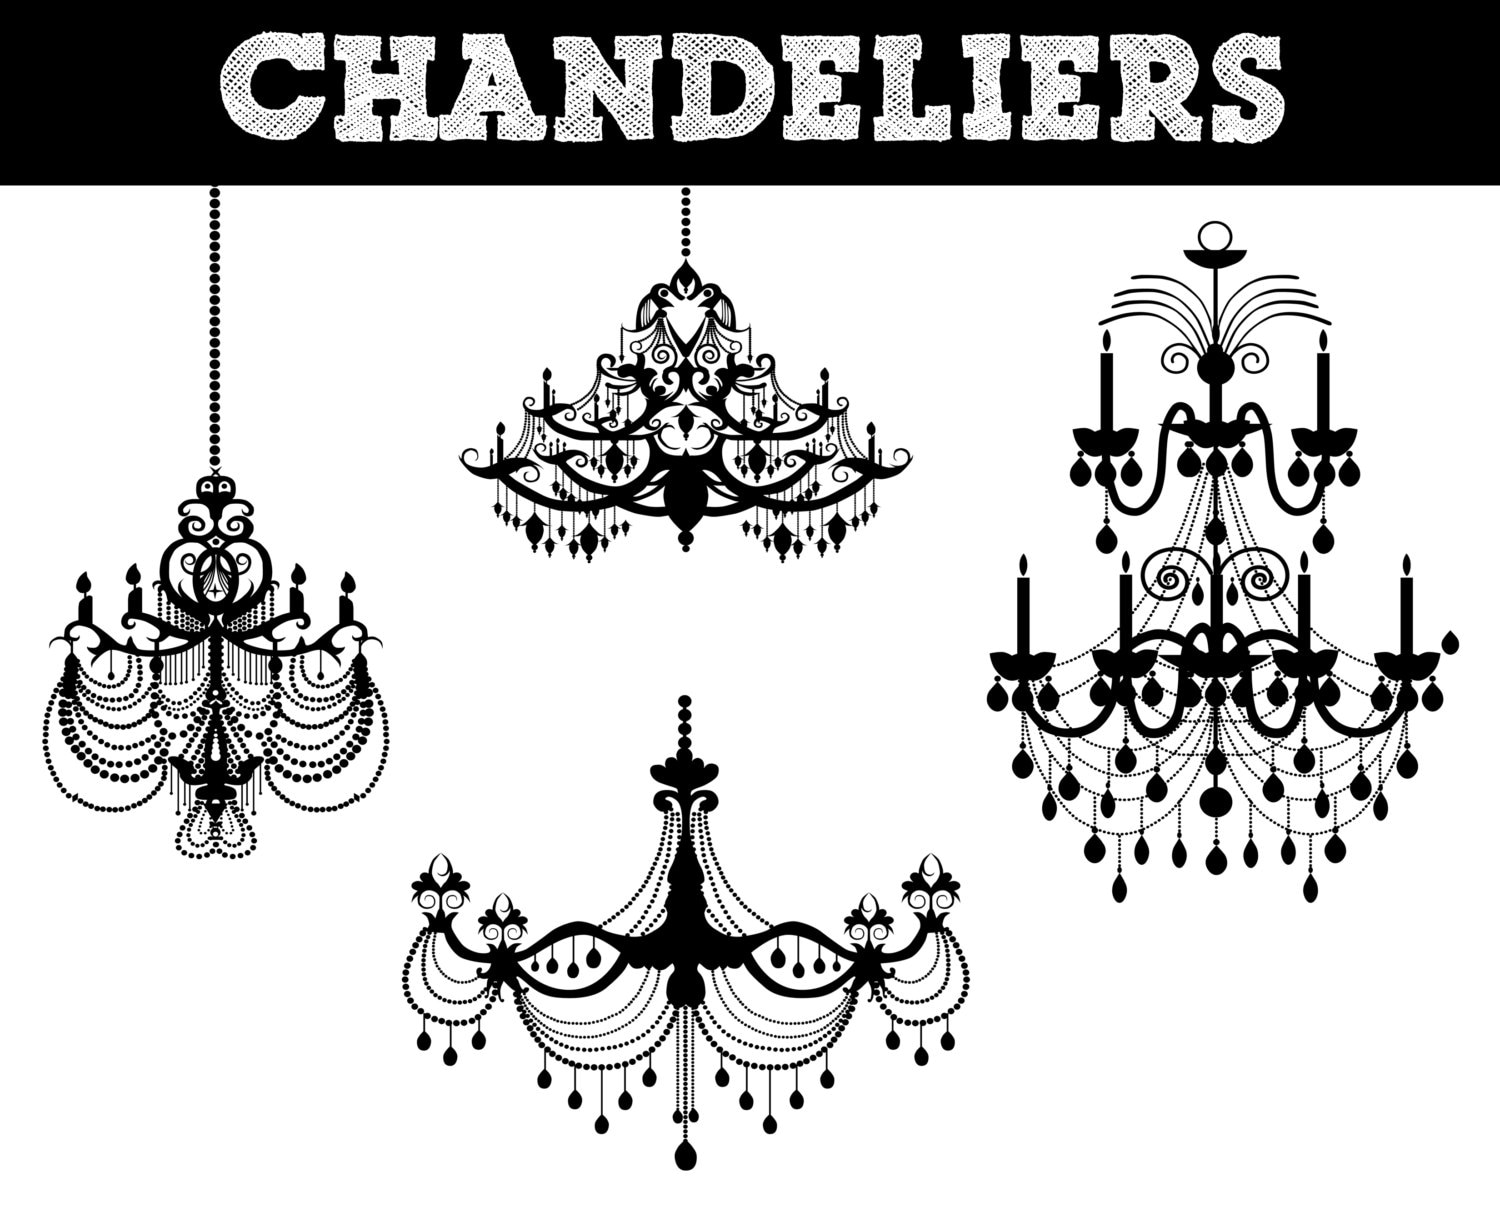 Chandelier silhouettes lighting silhouette commerical zoom aloadofball Gallery